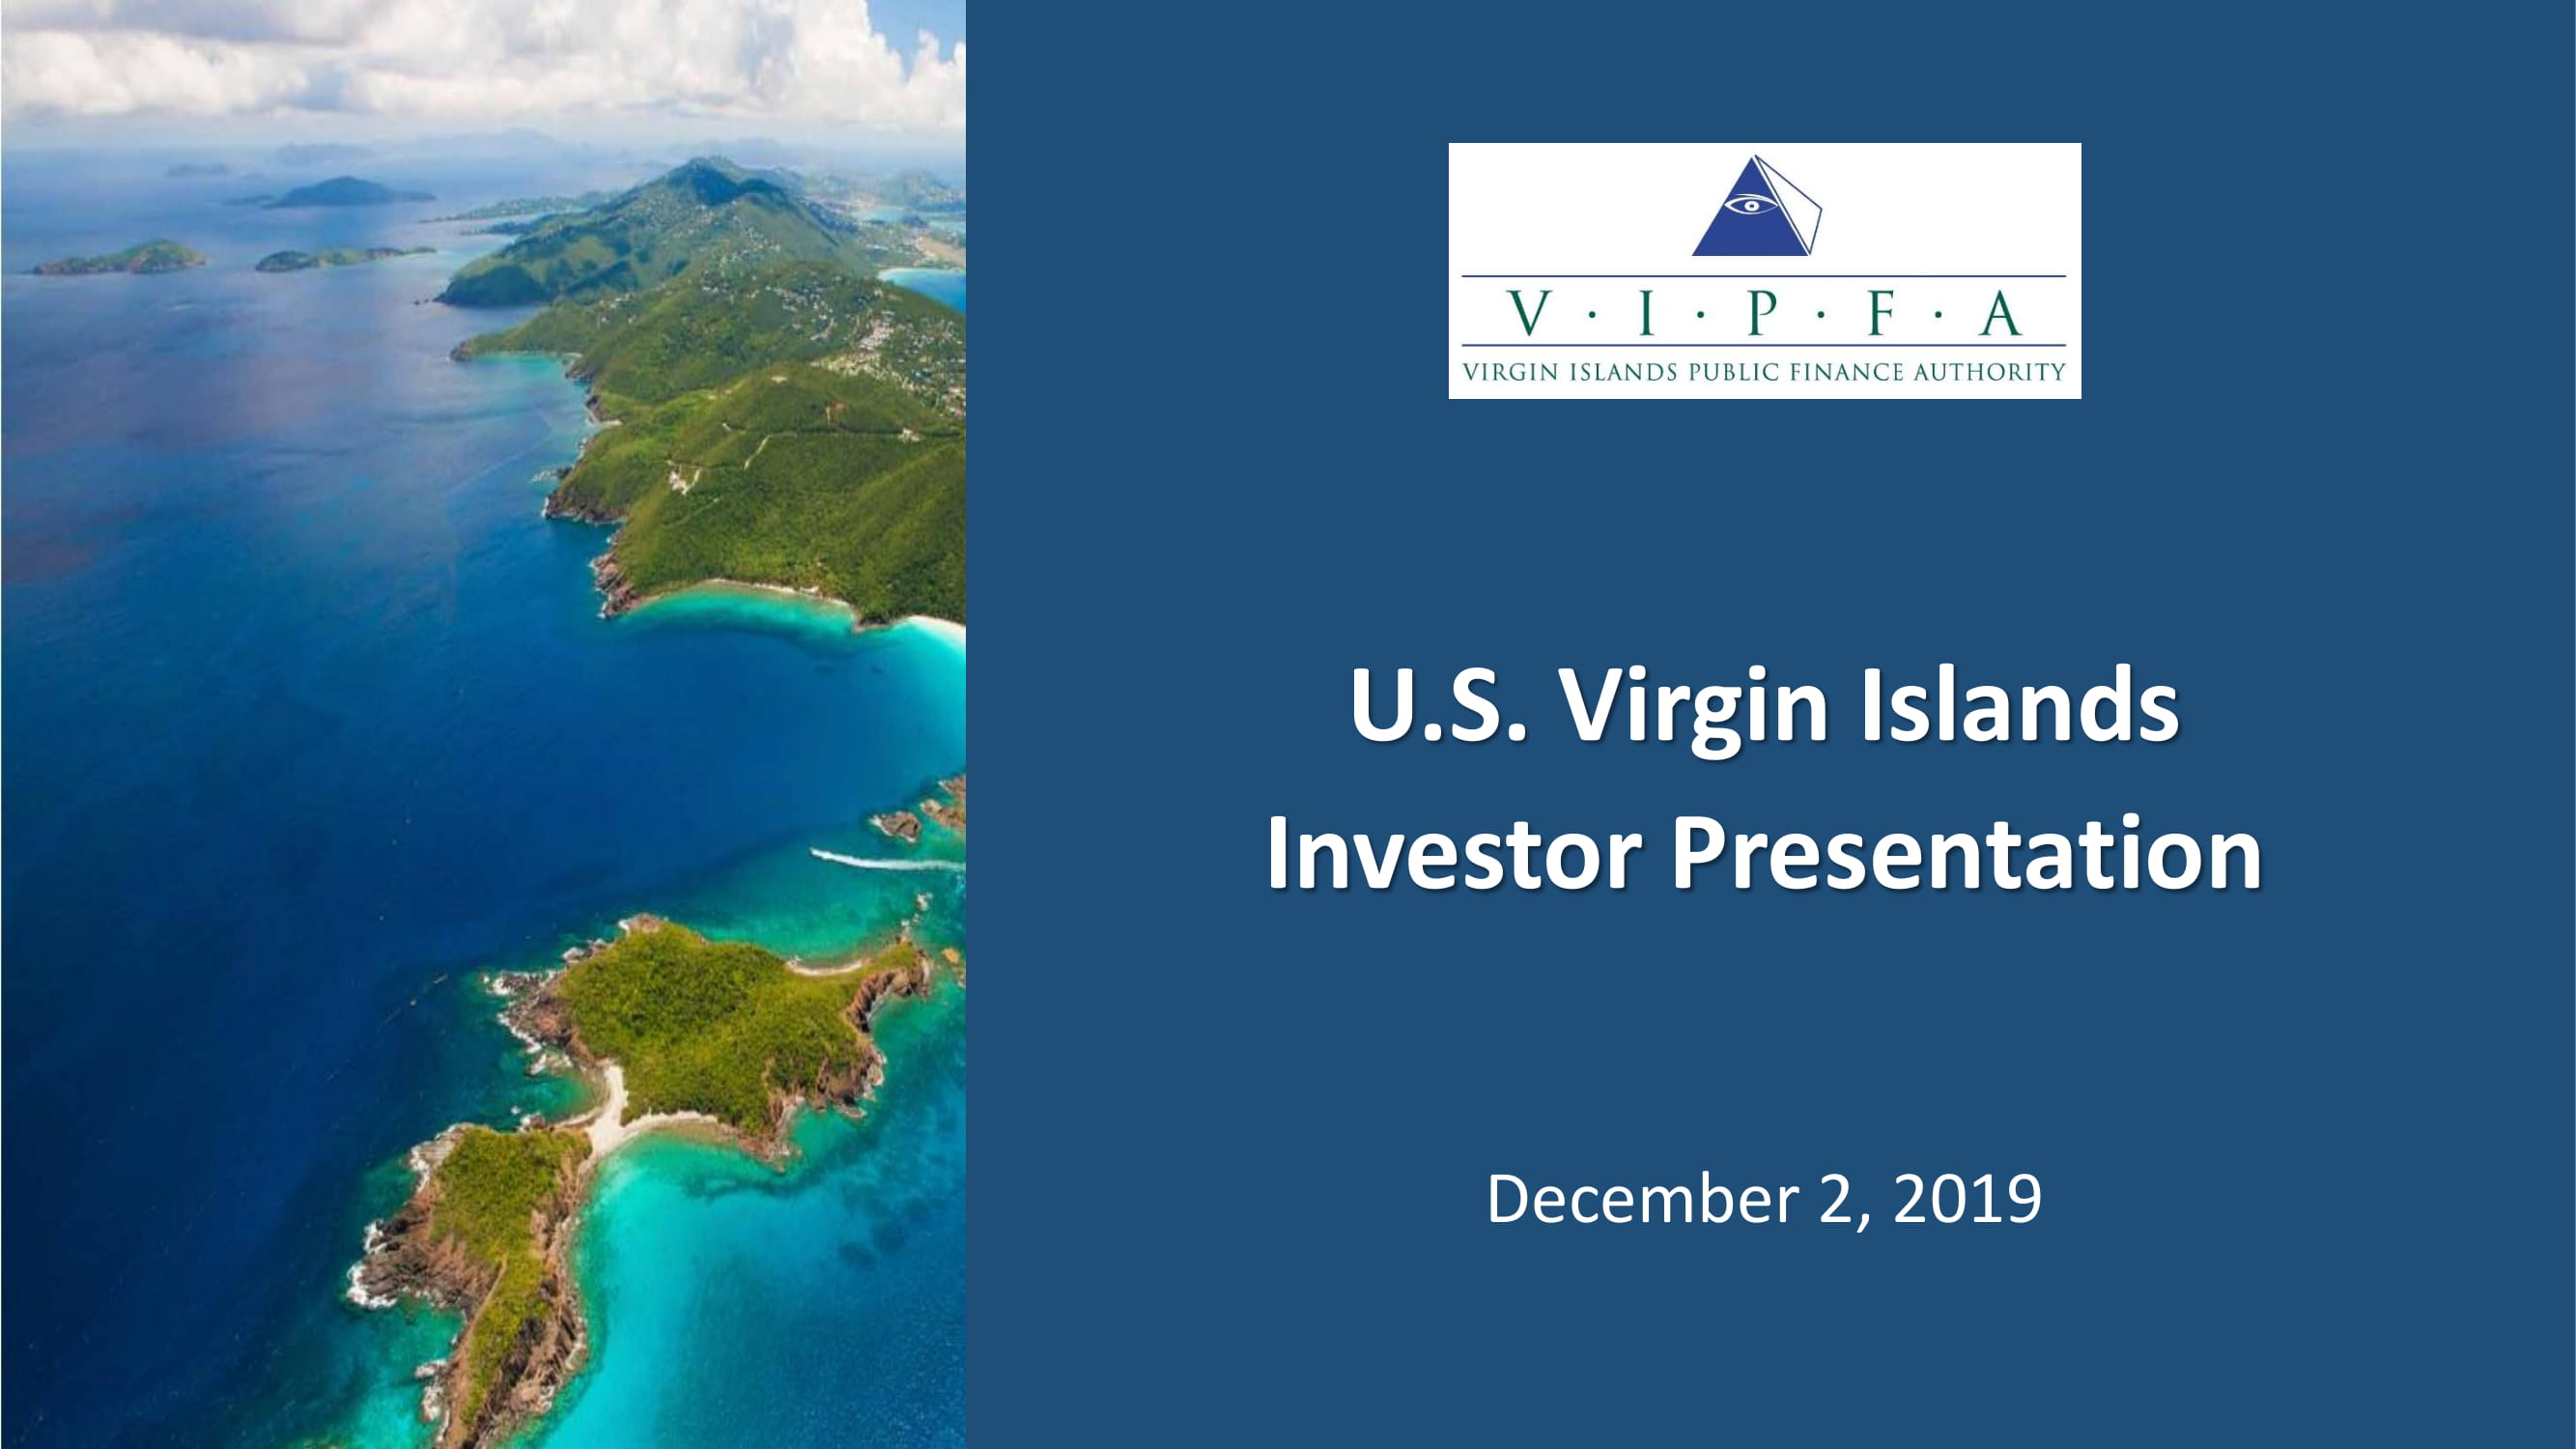 U.S. Virgin Islands Investor Presentation